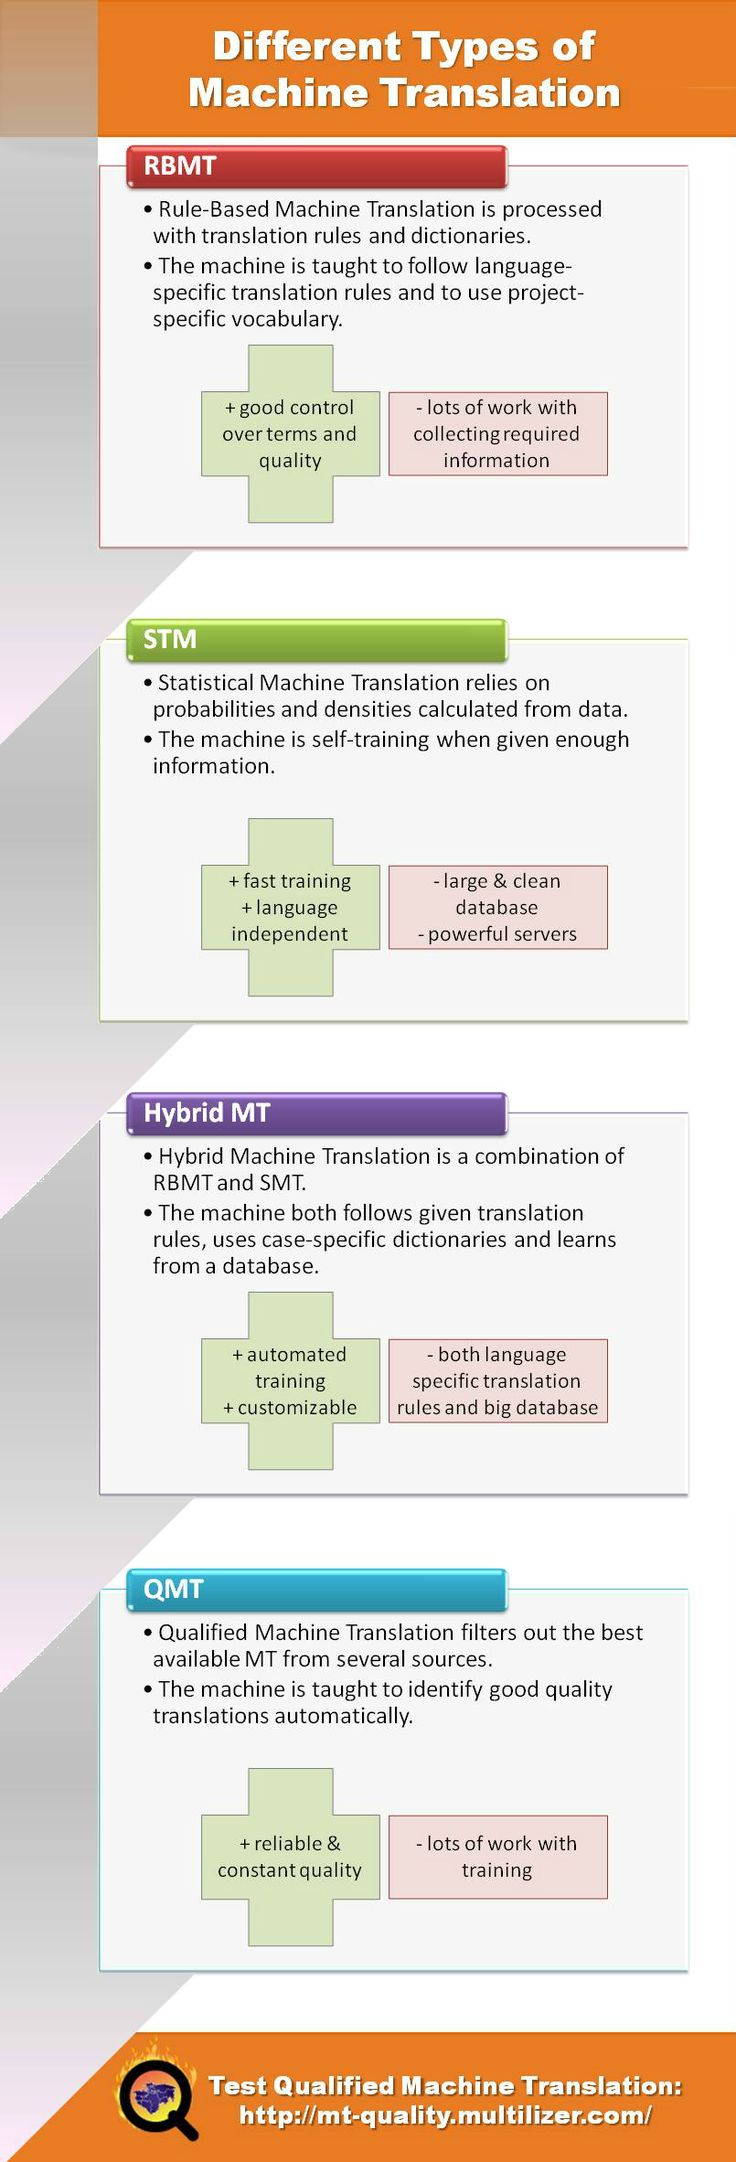 Do you know the different types of machine translation?